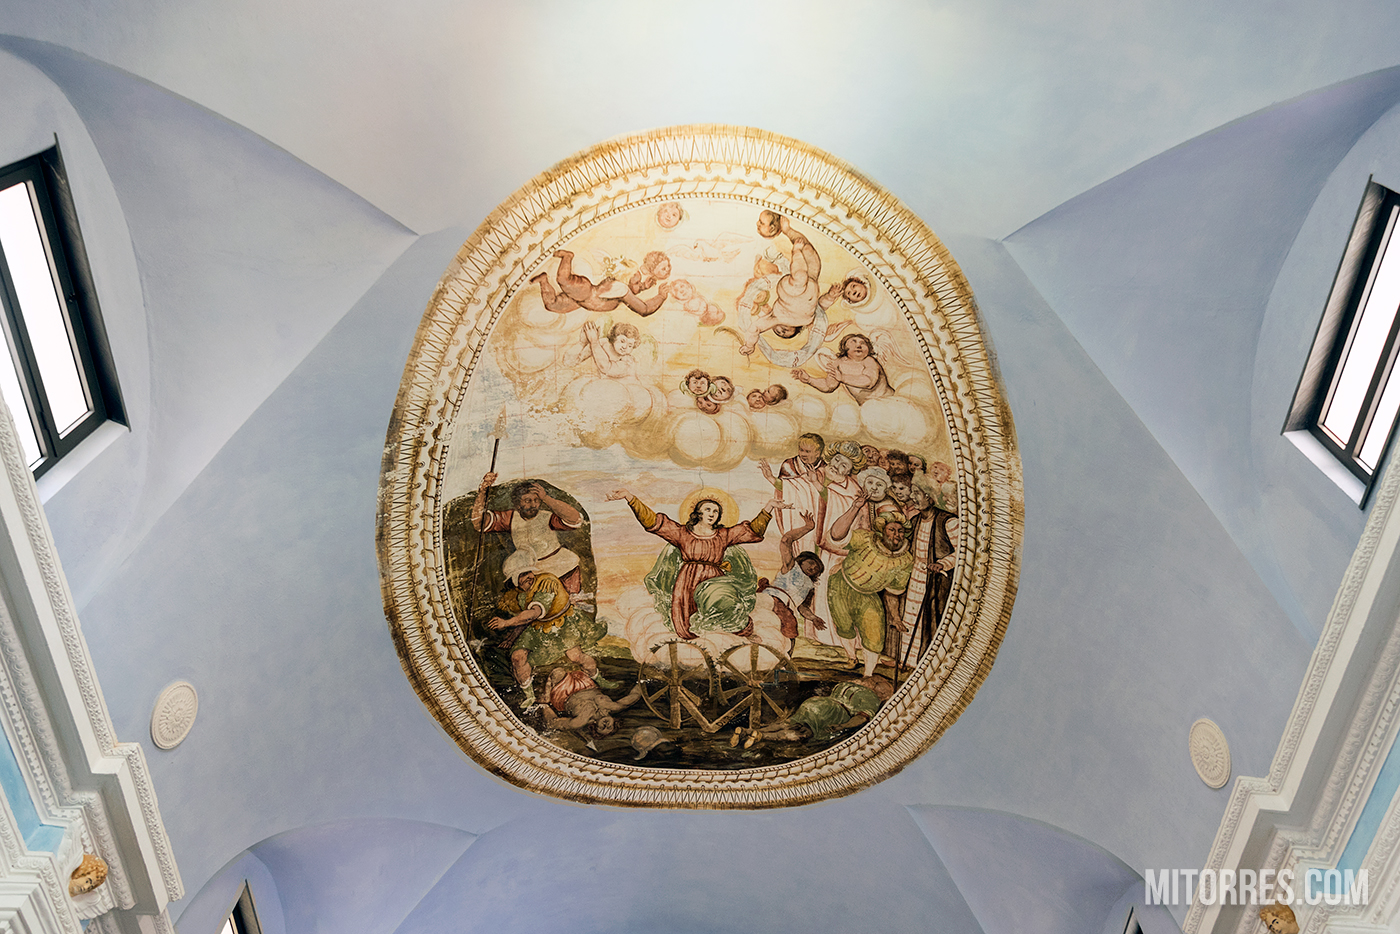 Ceiling inside the Oratory of the Disciplinati of Santa Caterina